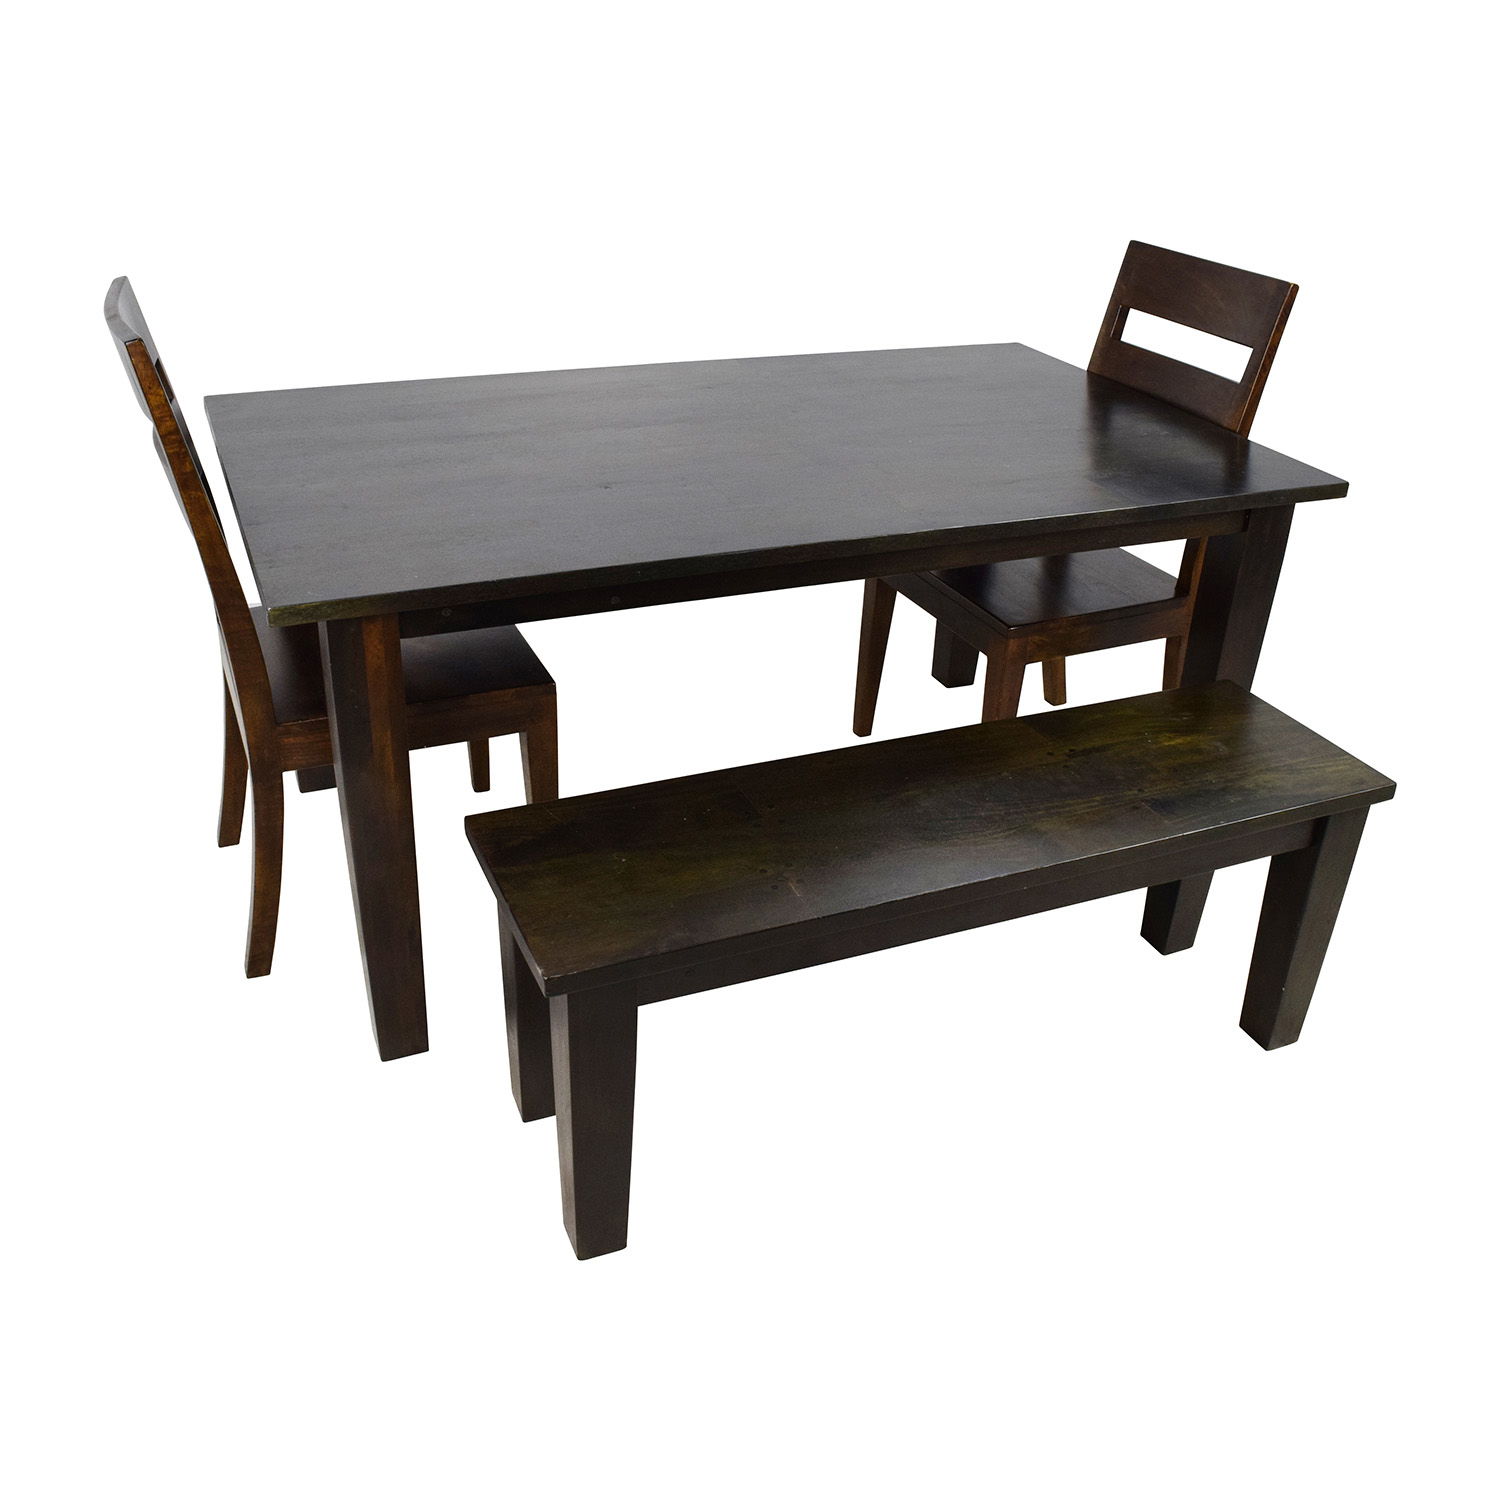 Crate and Barrel Crate & Barrel Basque Java Dining Table Set for sale